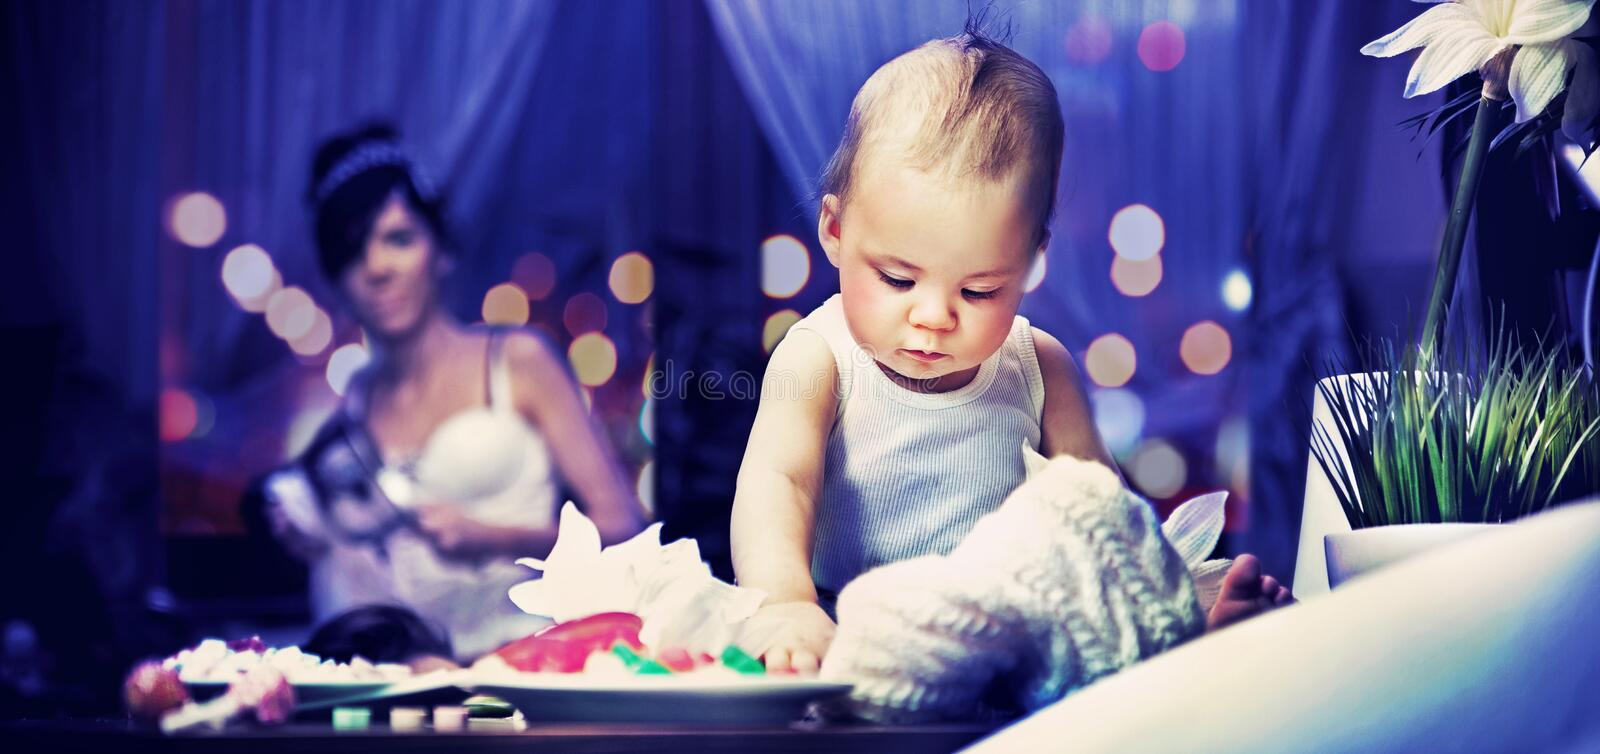 Download Cute Child And Mum In Kitchen Royalty Free Stock Photos - Image: 24156048